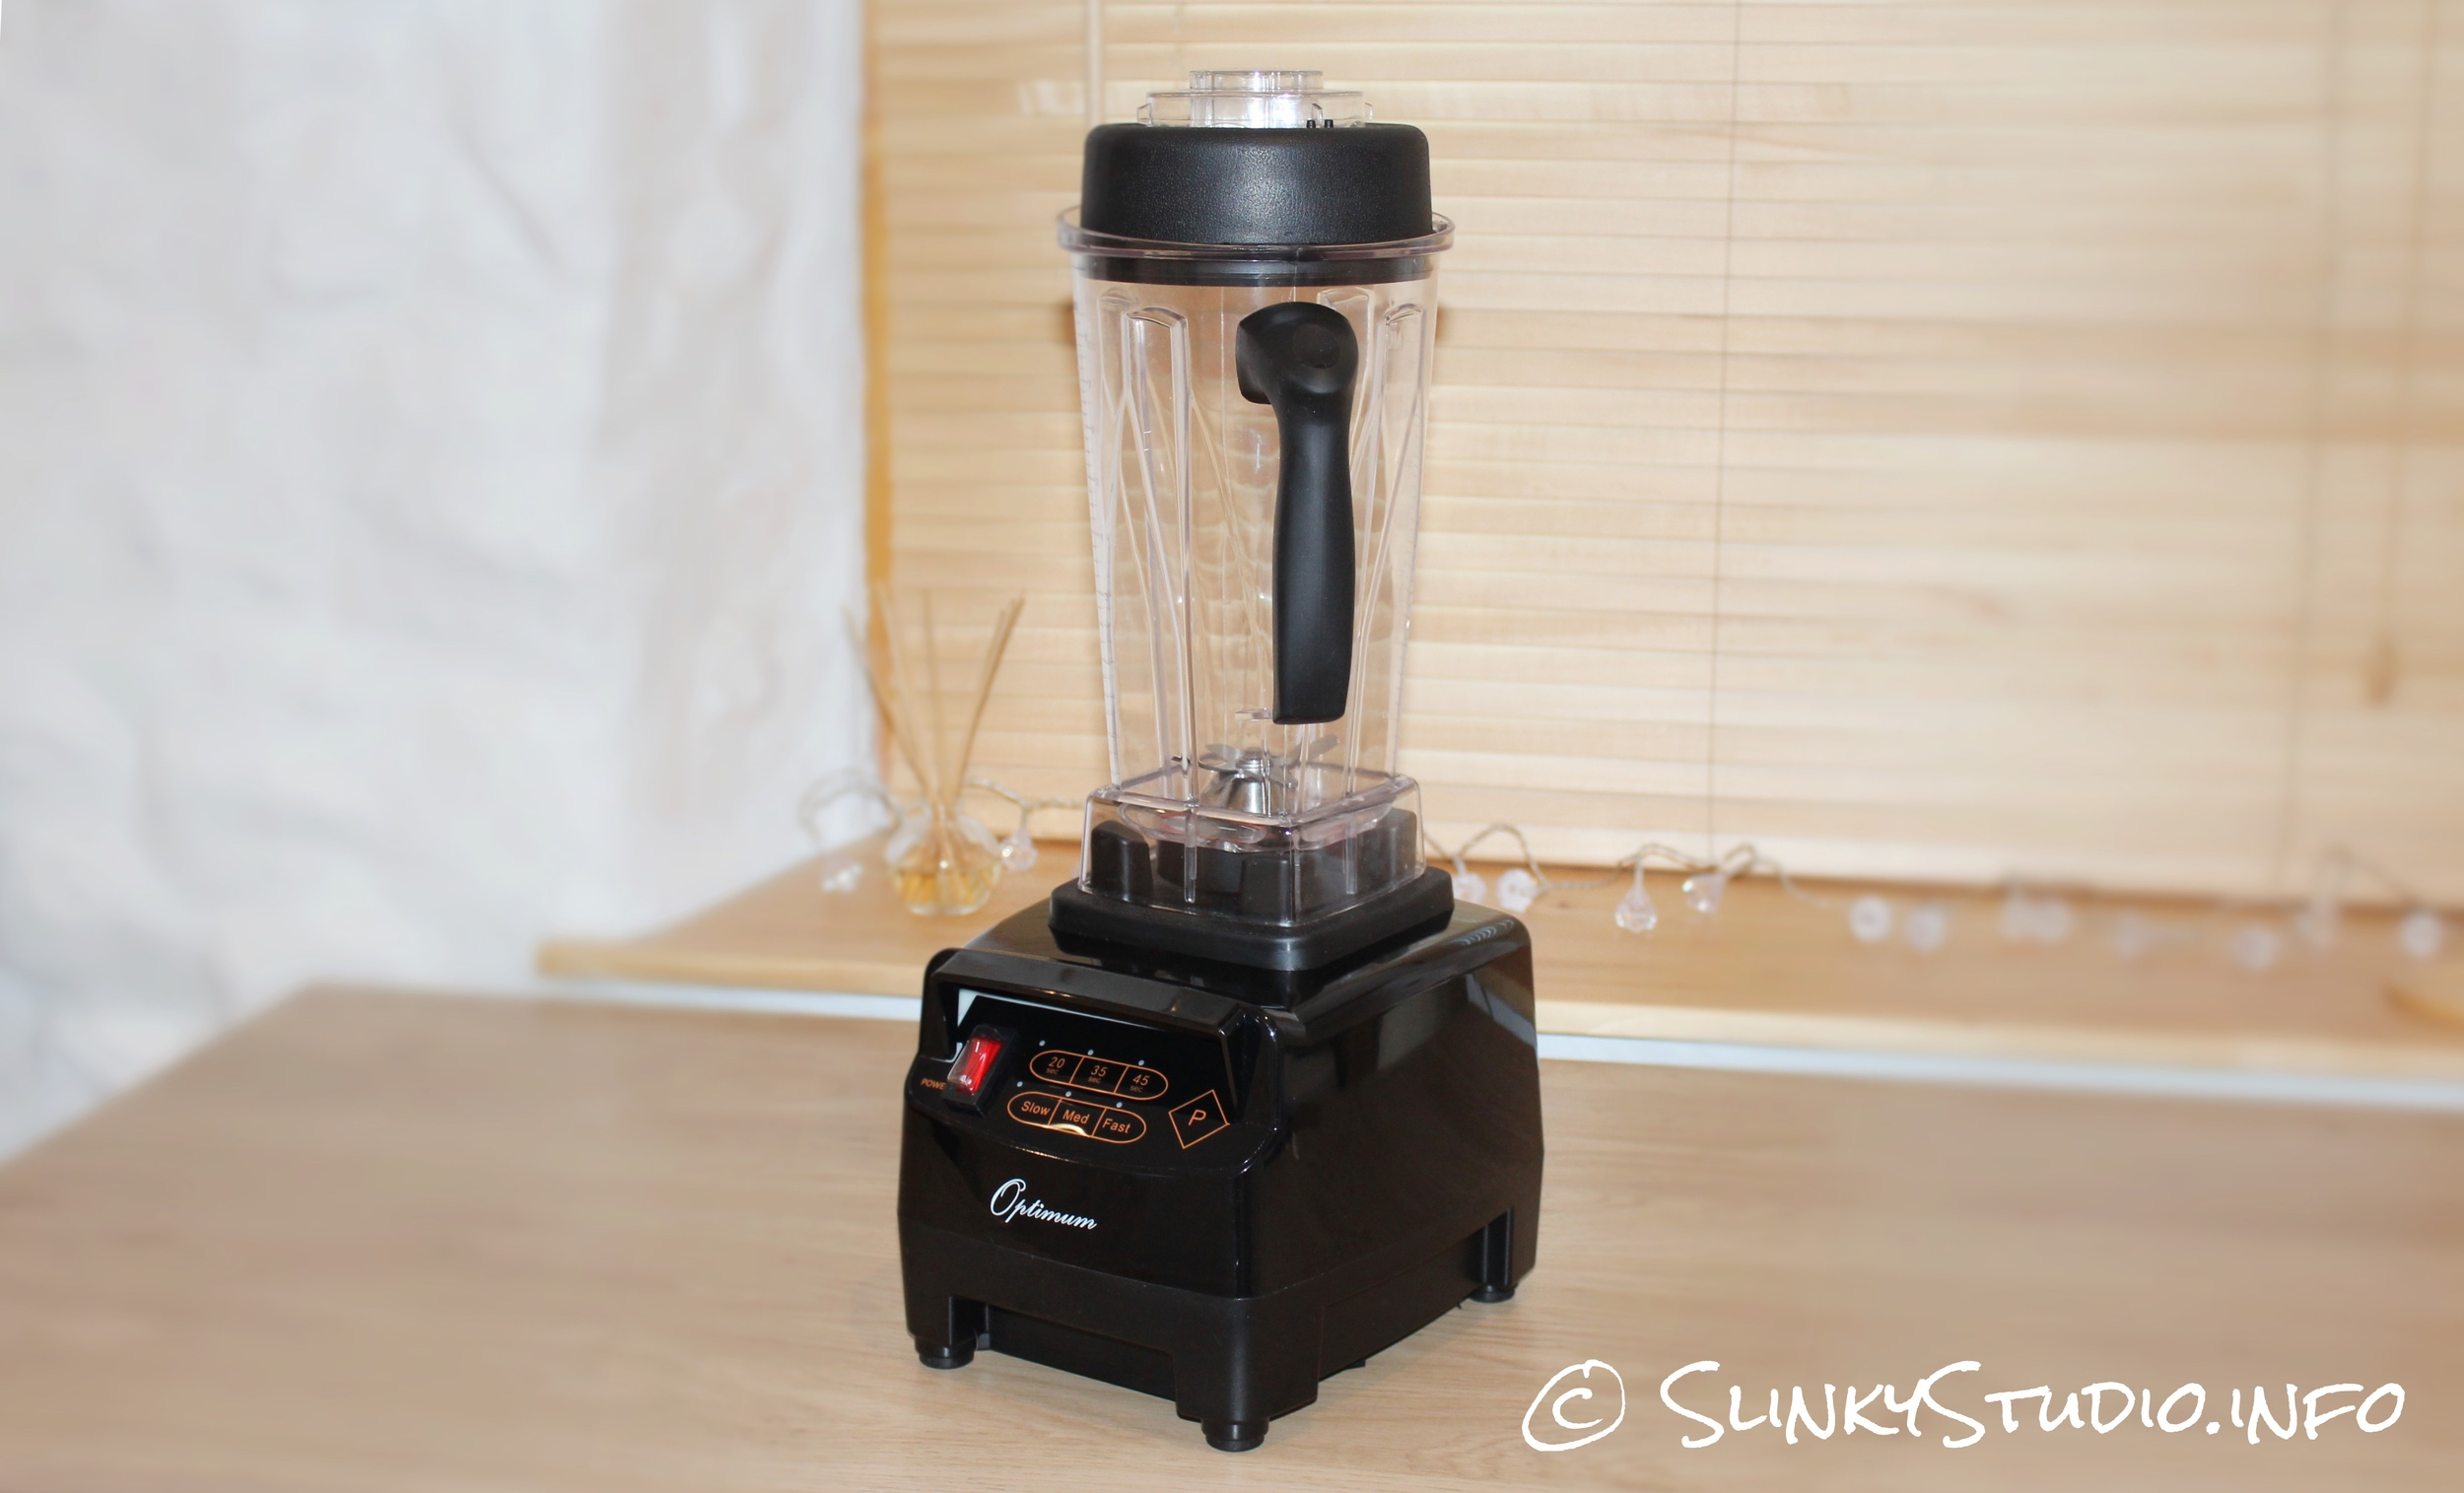 Optimum 9200 Next Generation Blender